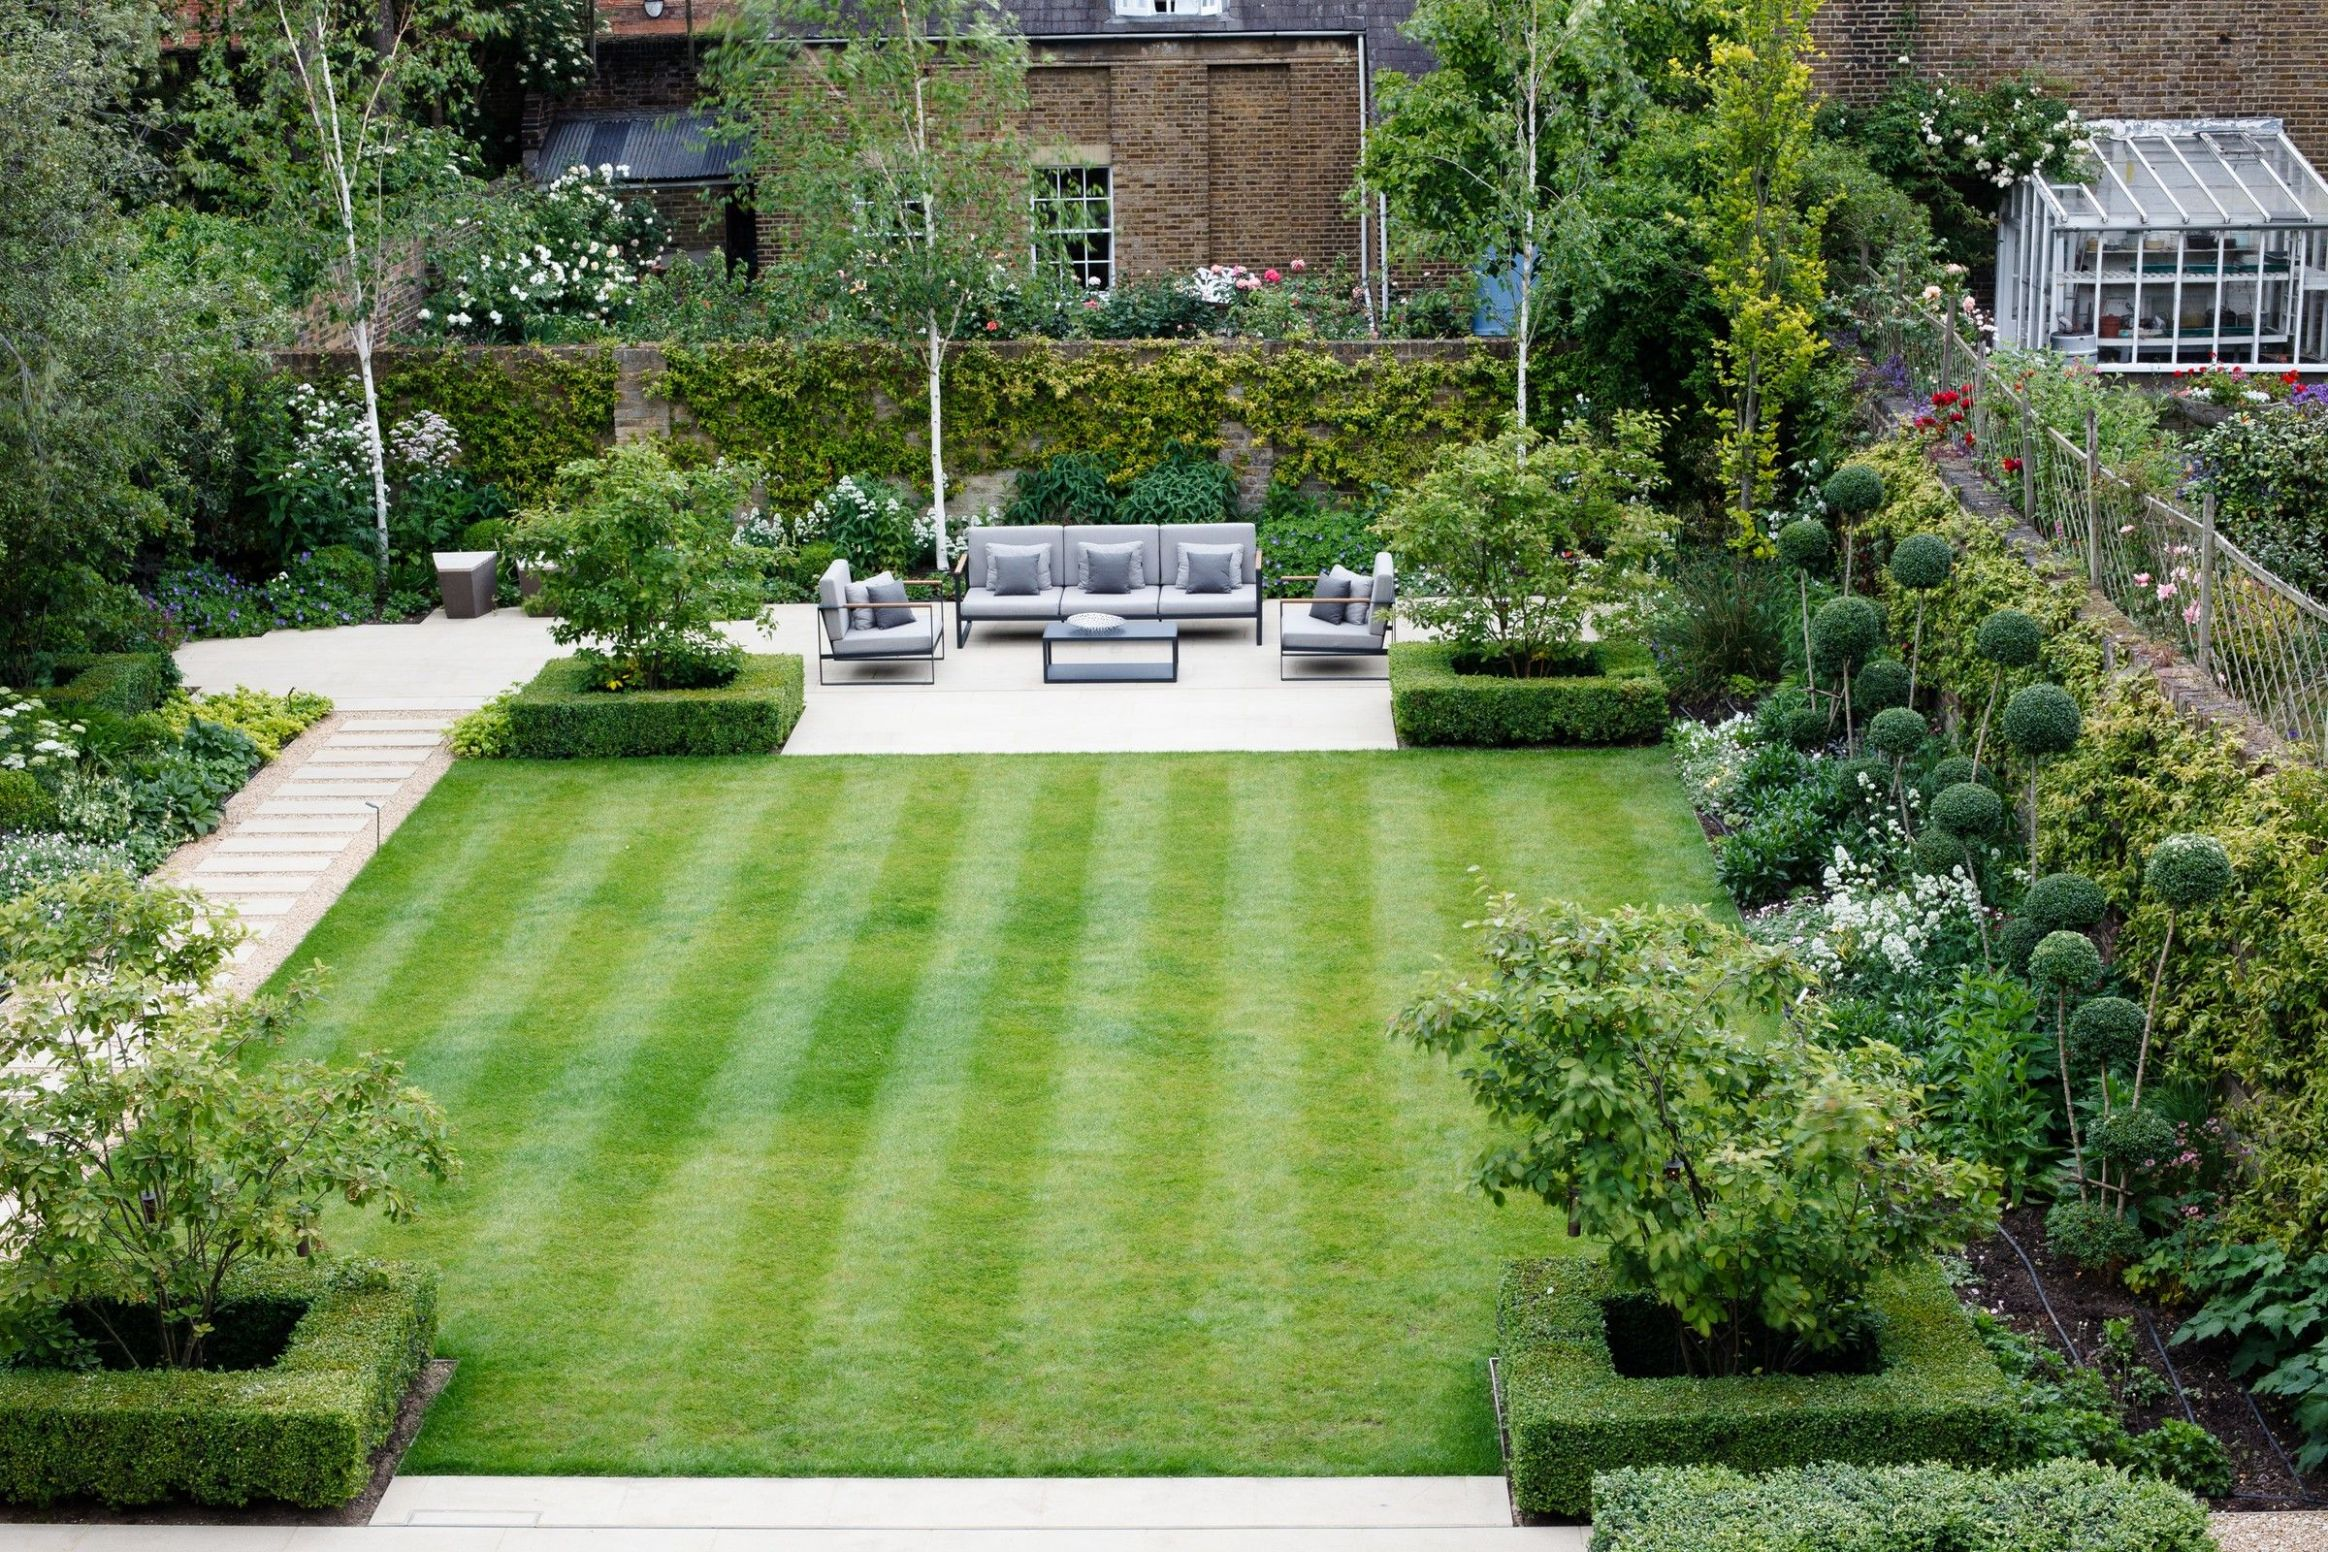 Formal Square Lawn from Randle Siddeley (With images)   Formal ...